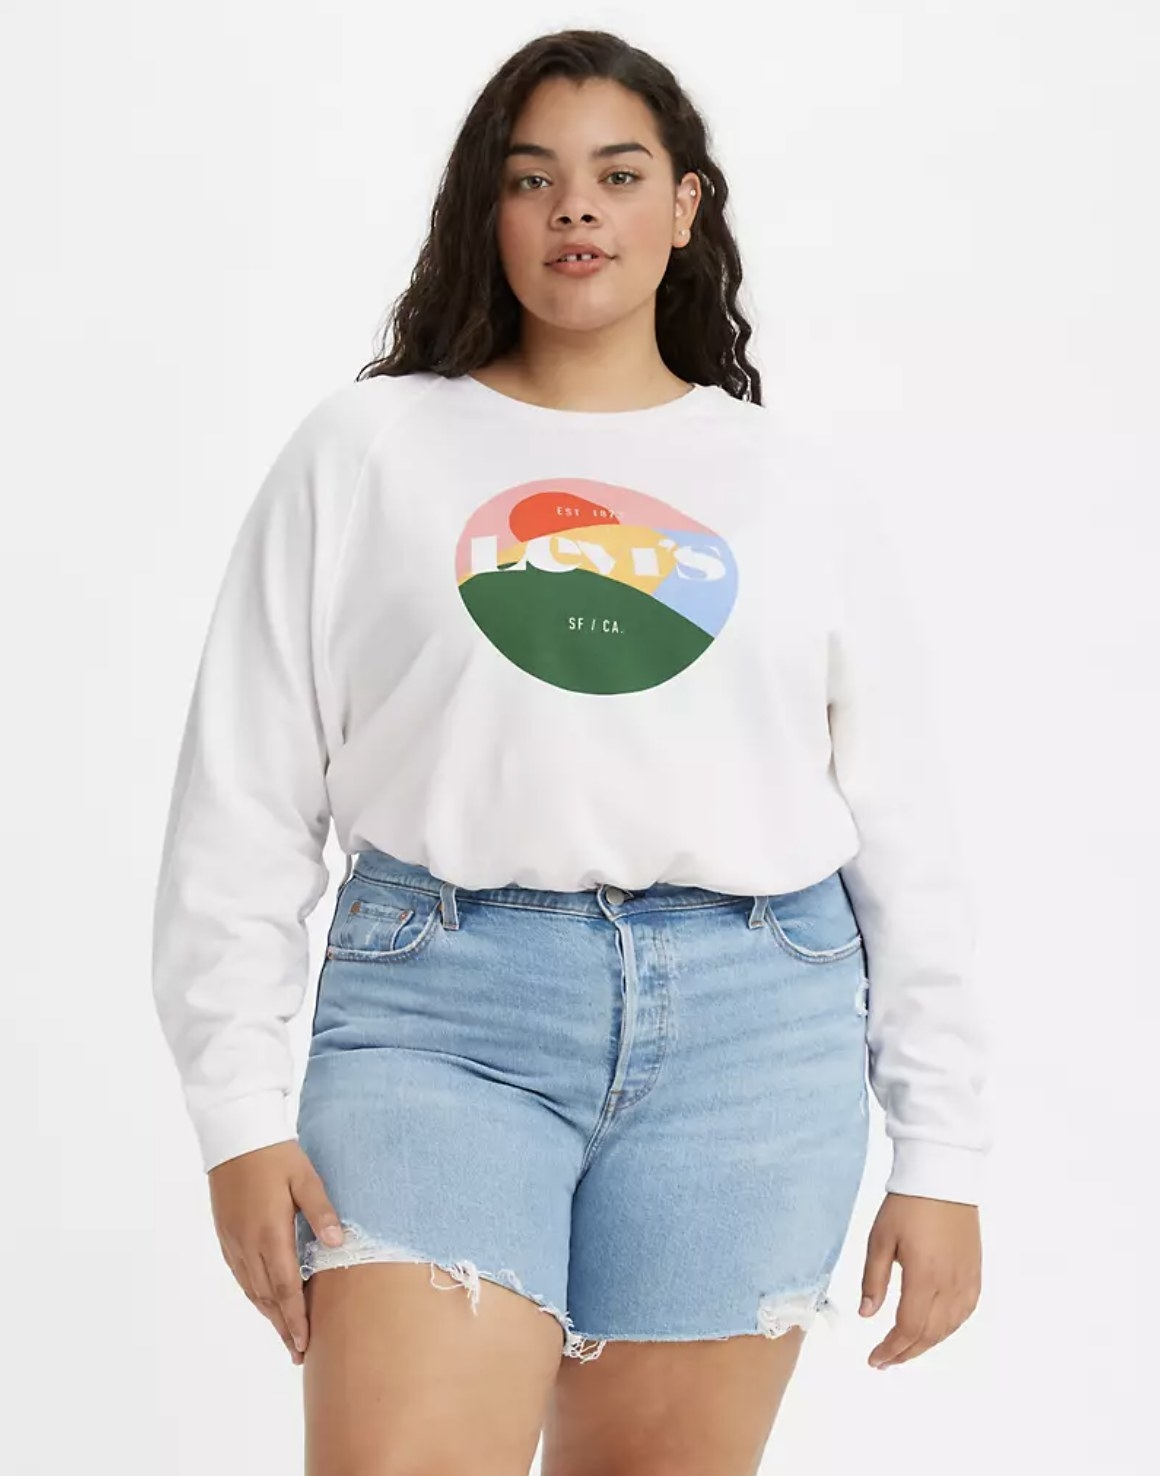 Model is wearing a white sweatshirt and denim shorts